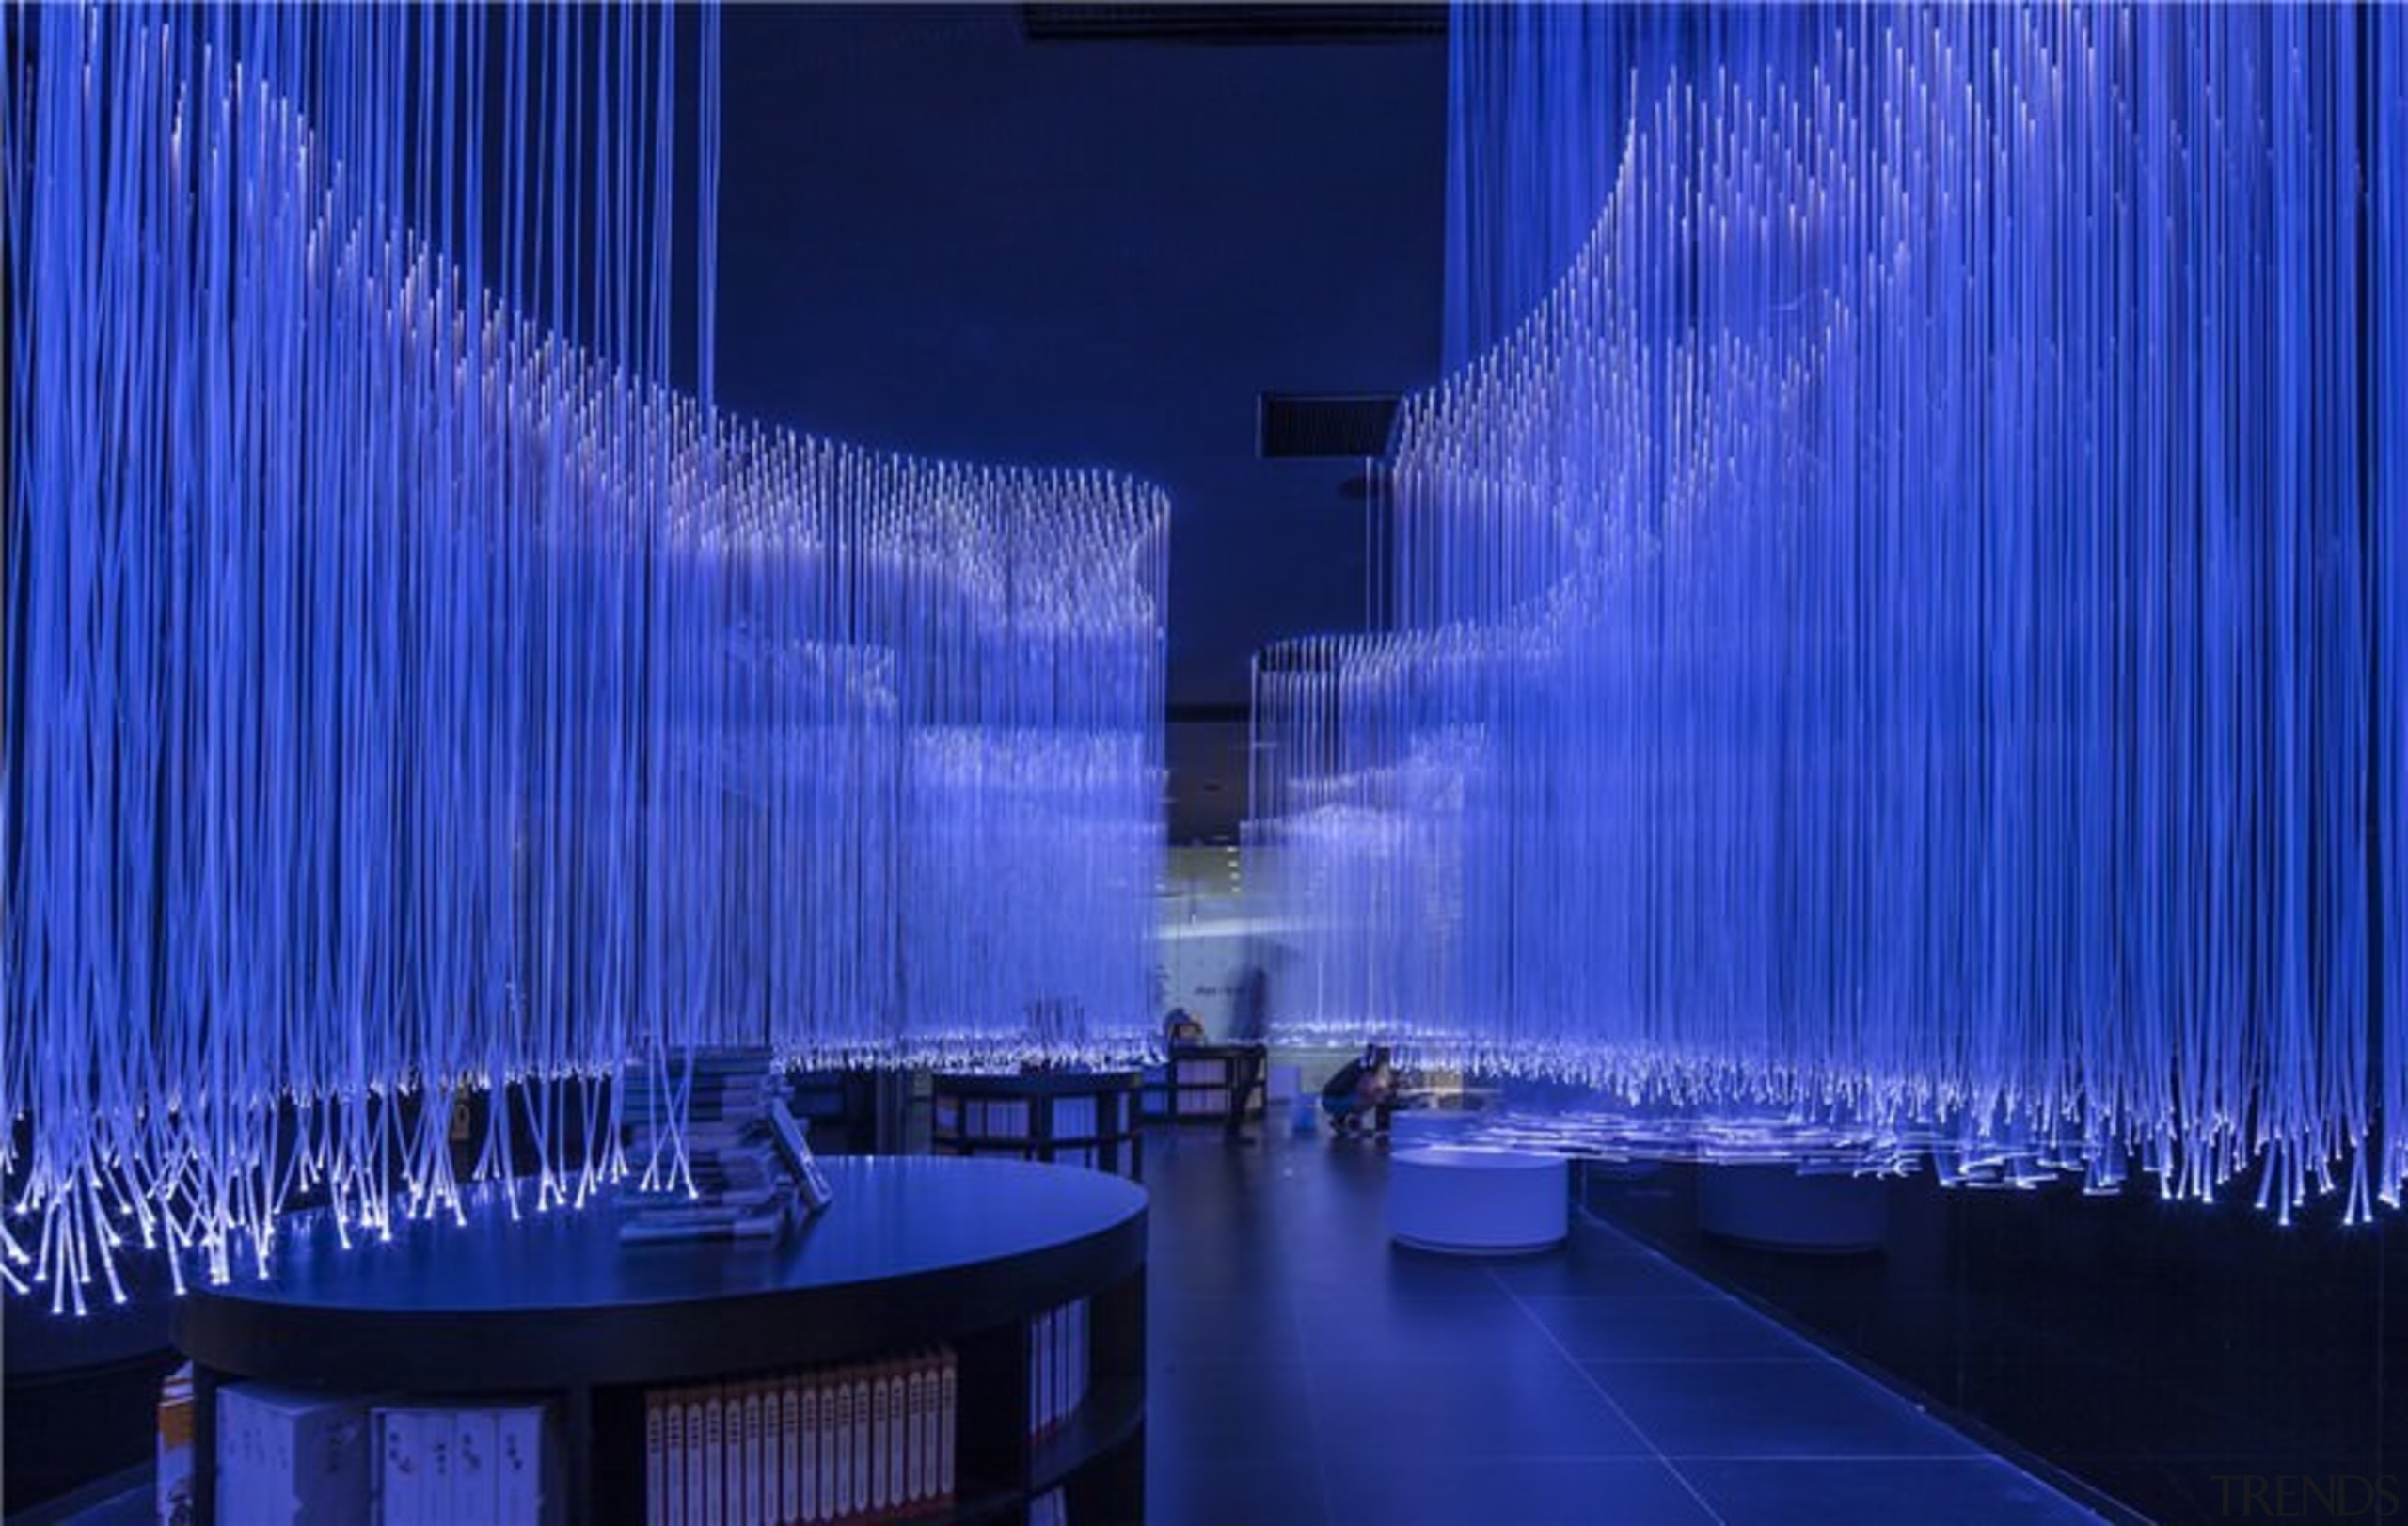 A new take on the bookstore - A architecture, blue, fountain, interior design, light, lighting, purple, structure, tourist attraction, water feature, blue